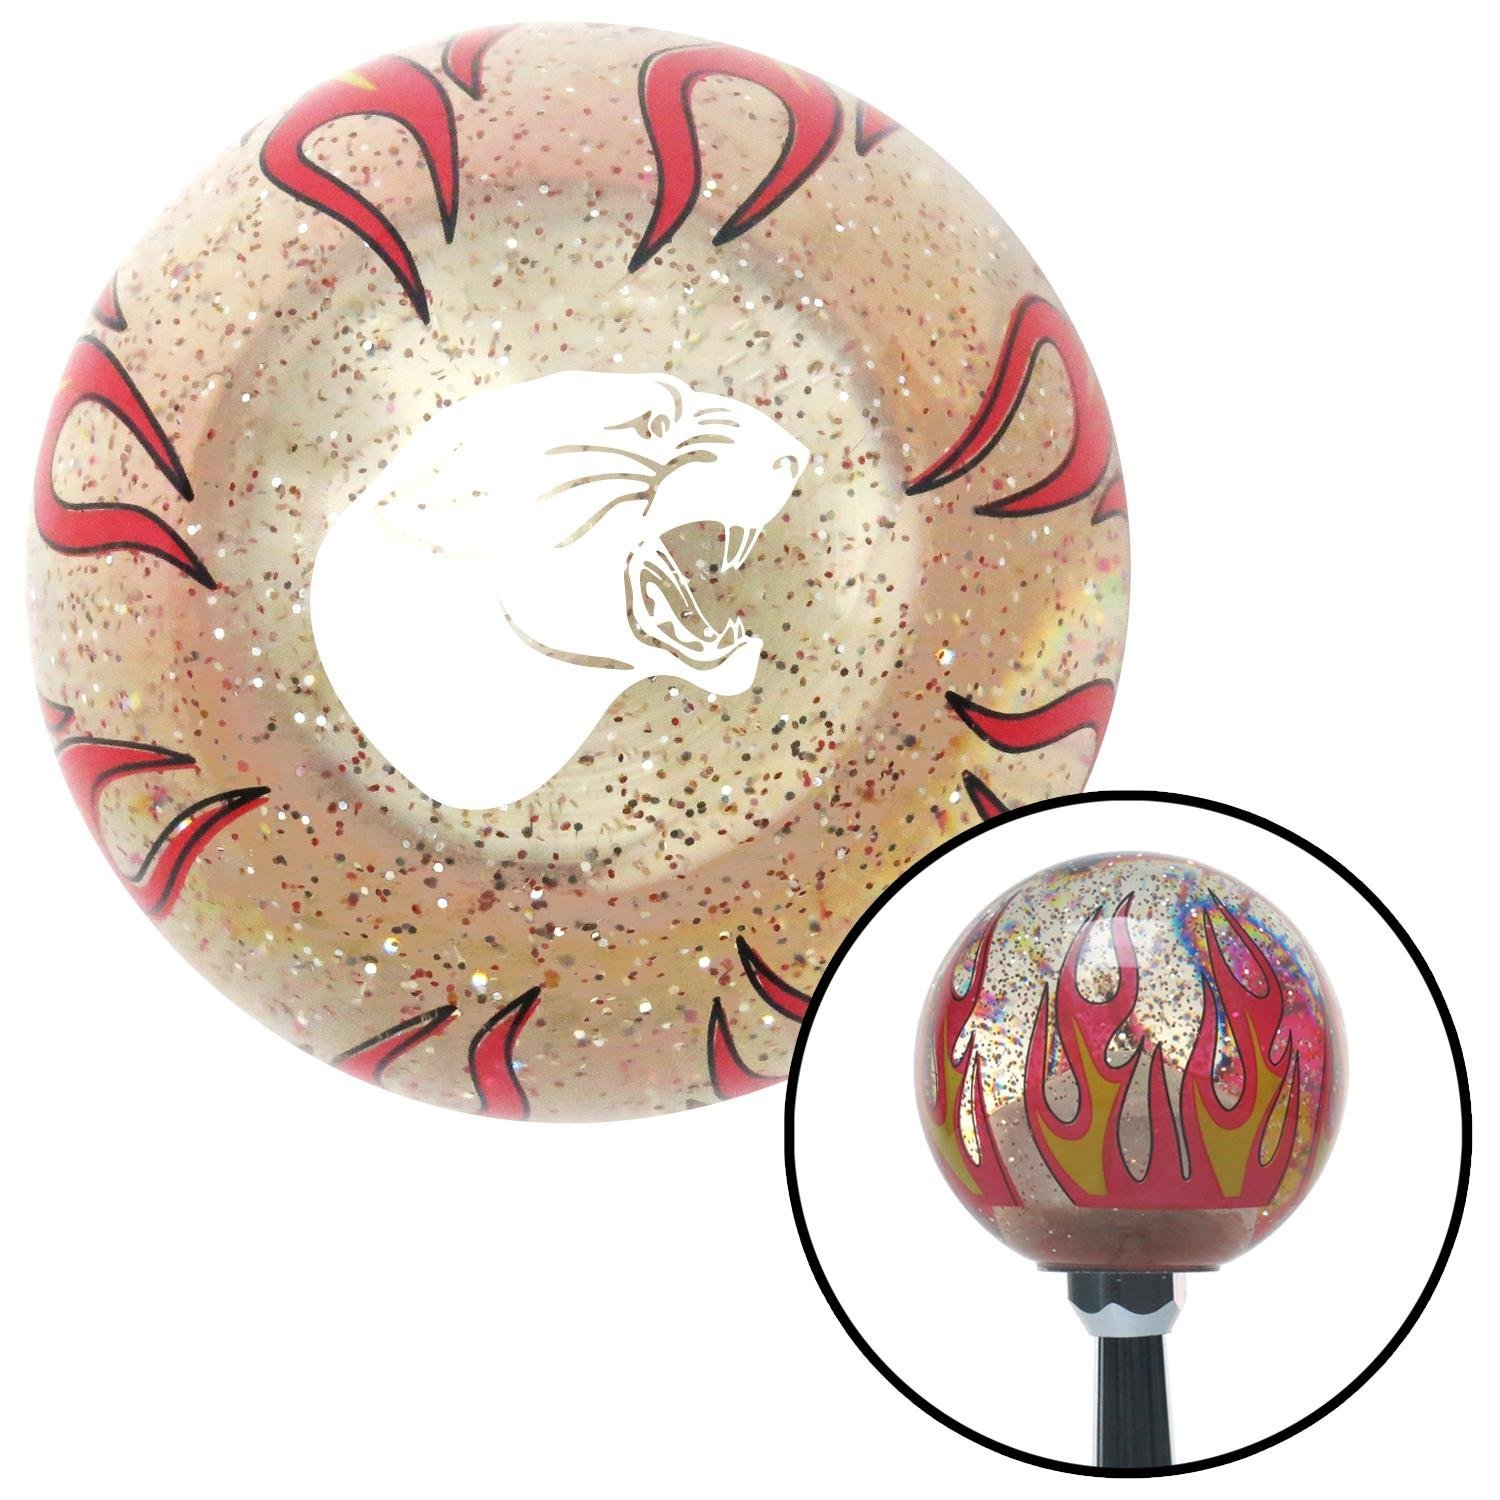 White Panther American Shifter 233871 Clear Flame Metal Flake Shift Knob with M16 x 1.5 Insert